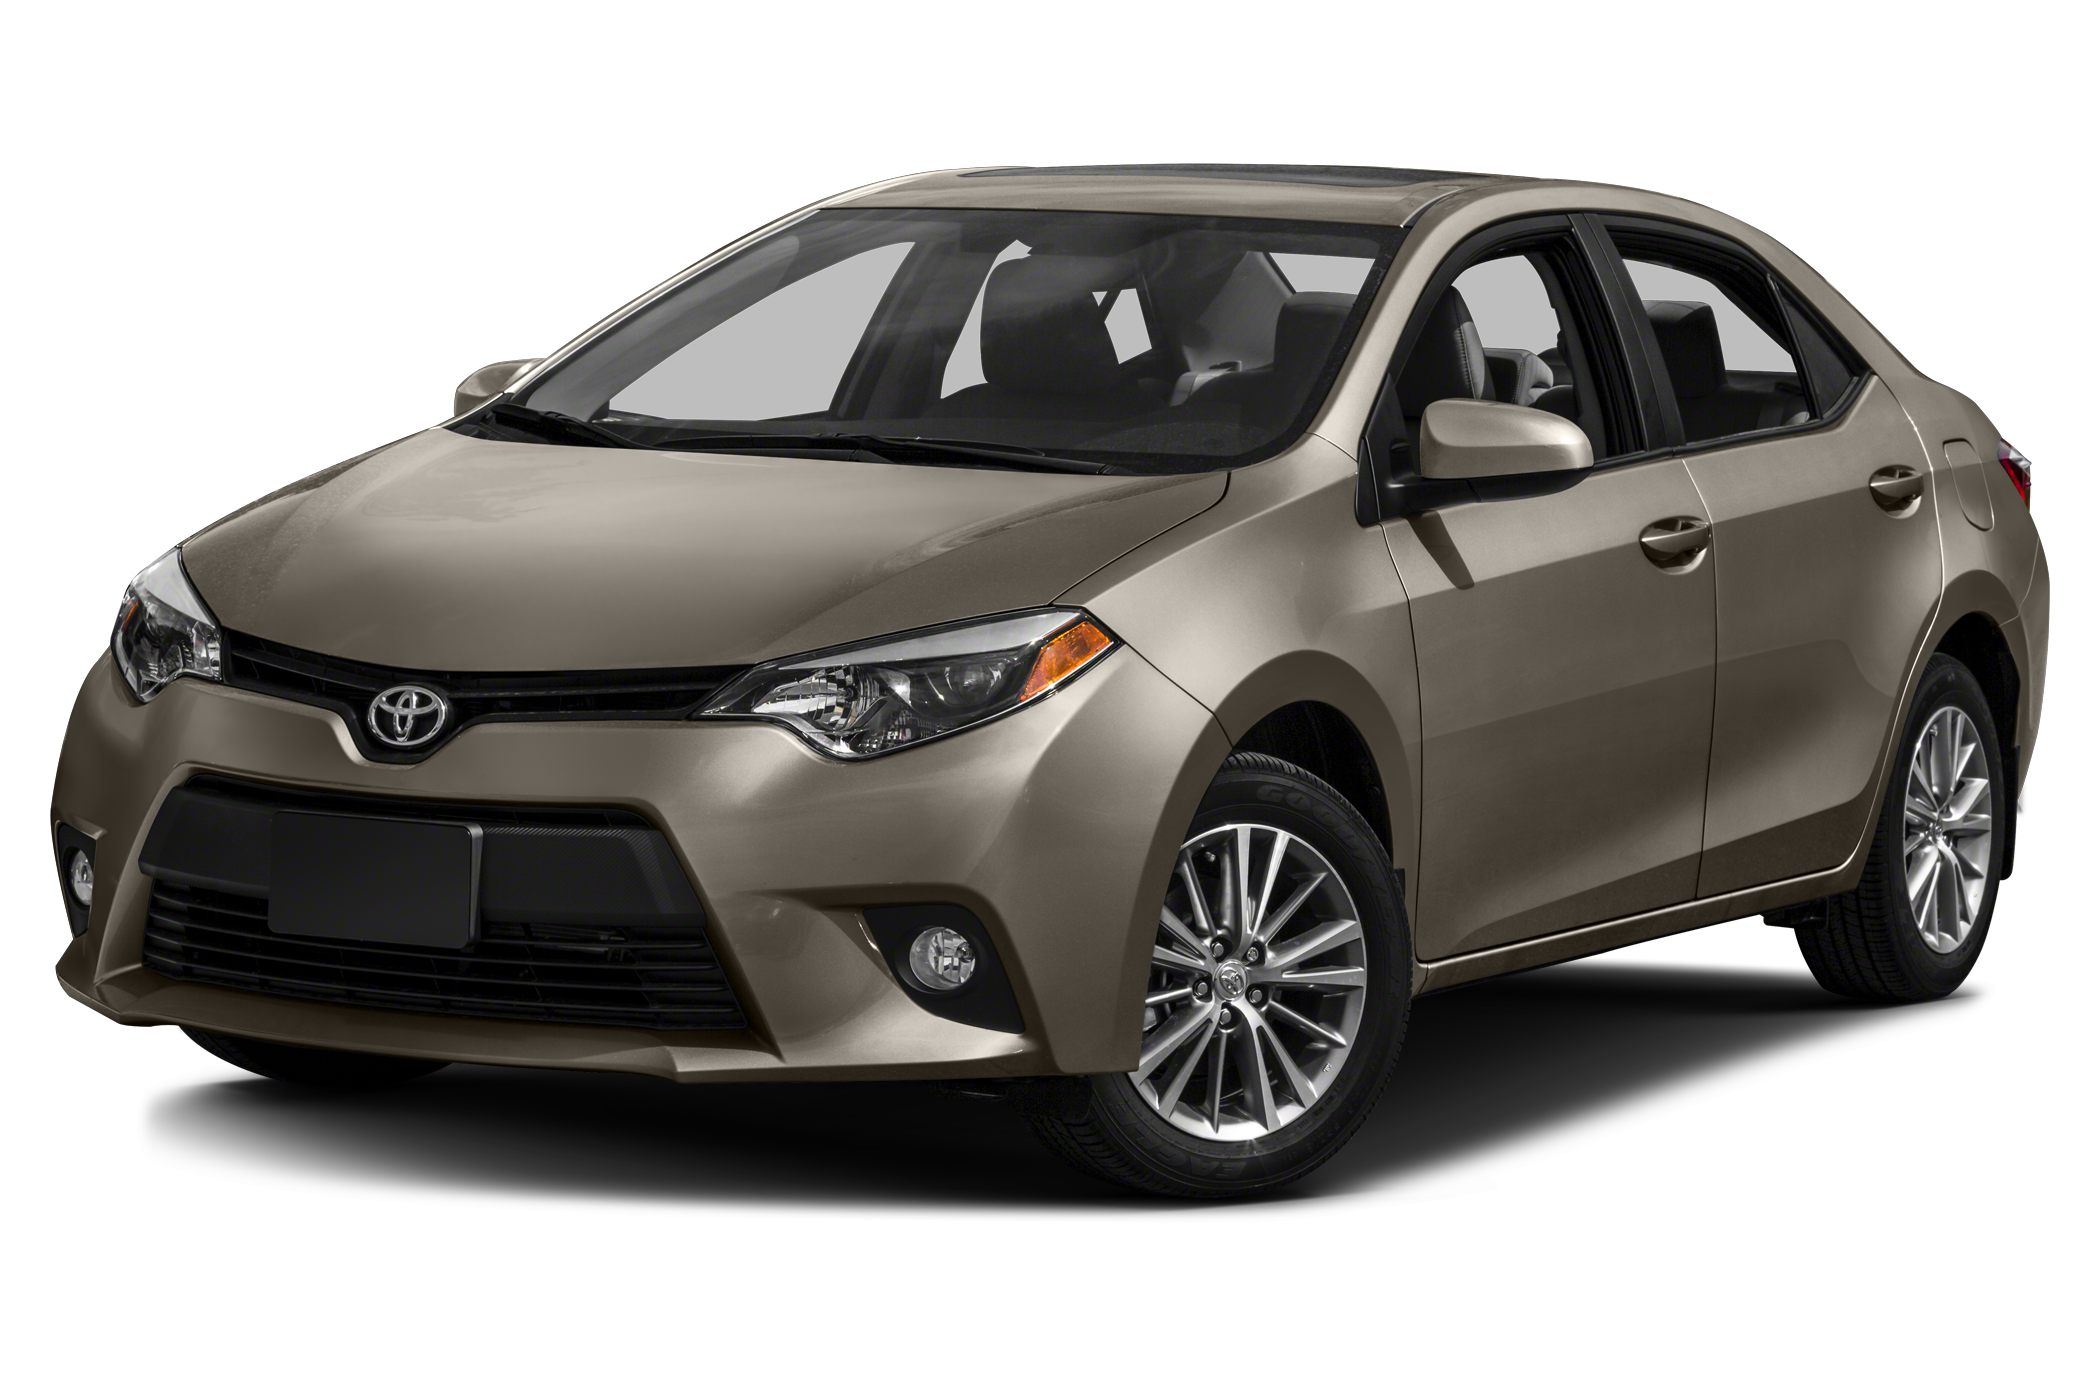 2015 Toyota Corolla L Sedan for sale in Austin for $18,255 with 0 miles